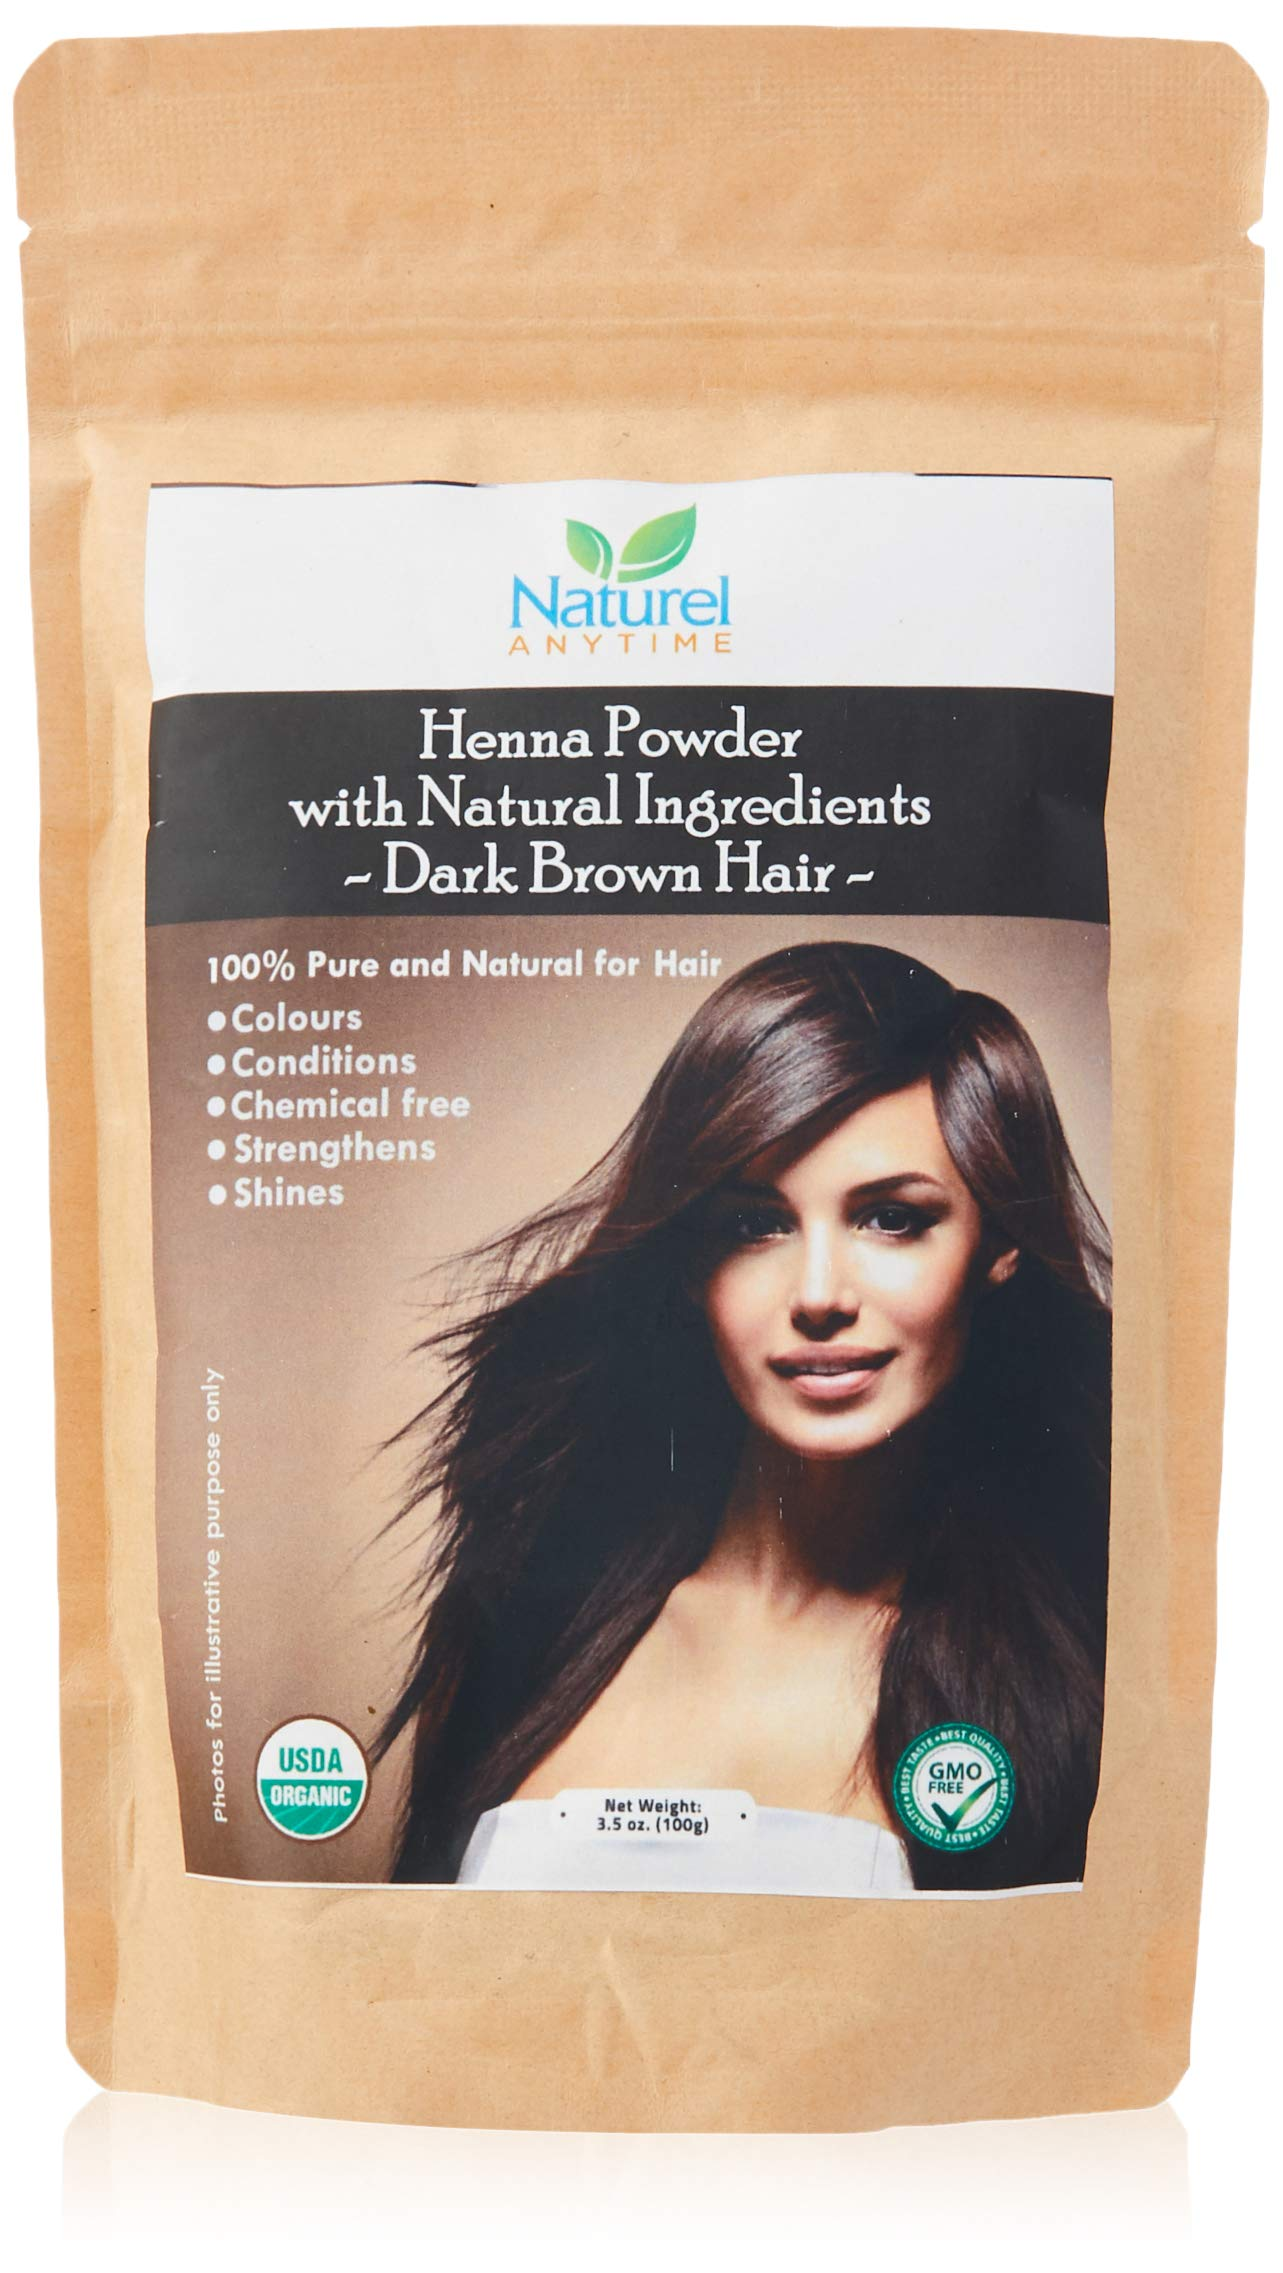 Organic(USDA,GMP) Henna for Dark Brown,Reddish Brown Colour Hair, people with more grey will need more Indigo for healthier hair (Read FULL listing, must strand test) CPSReports certified in UK/EU